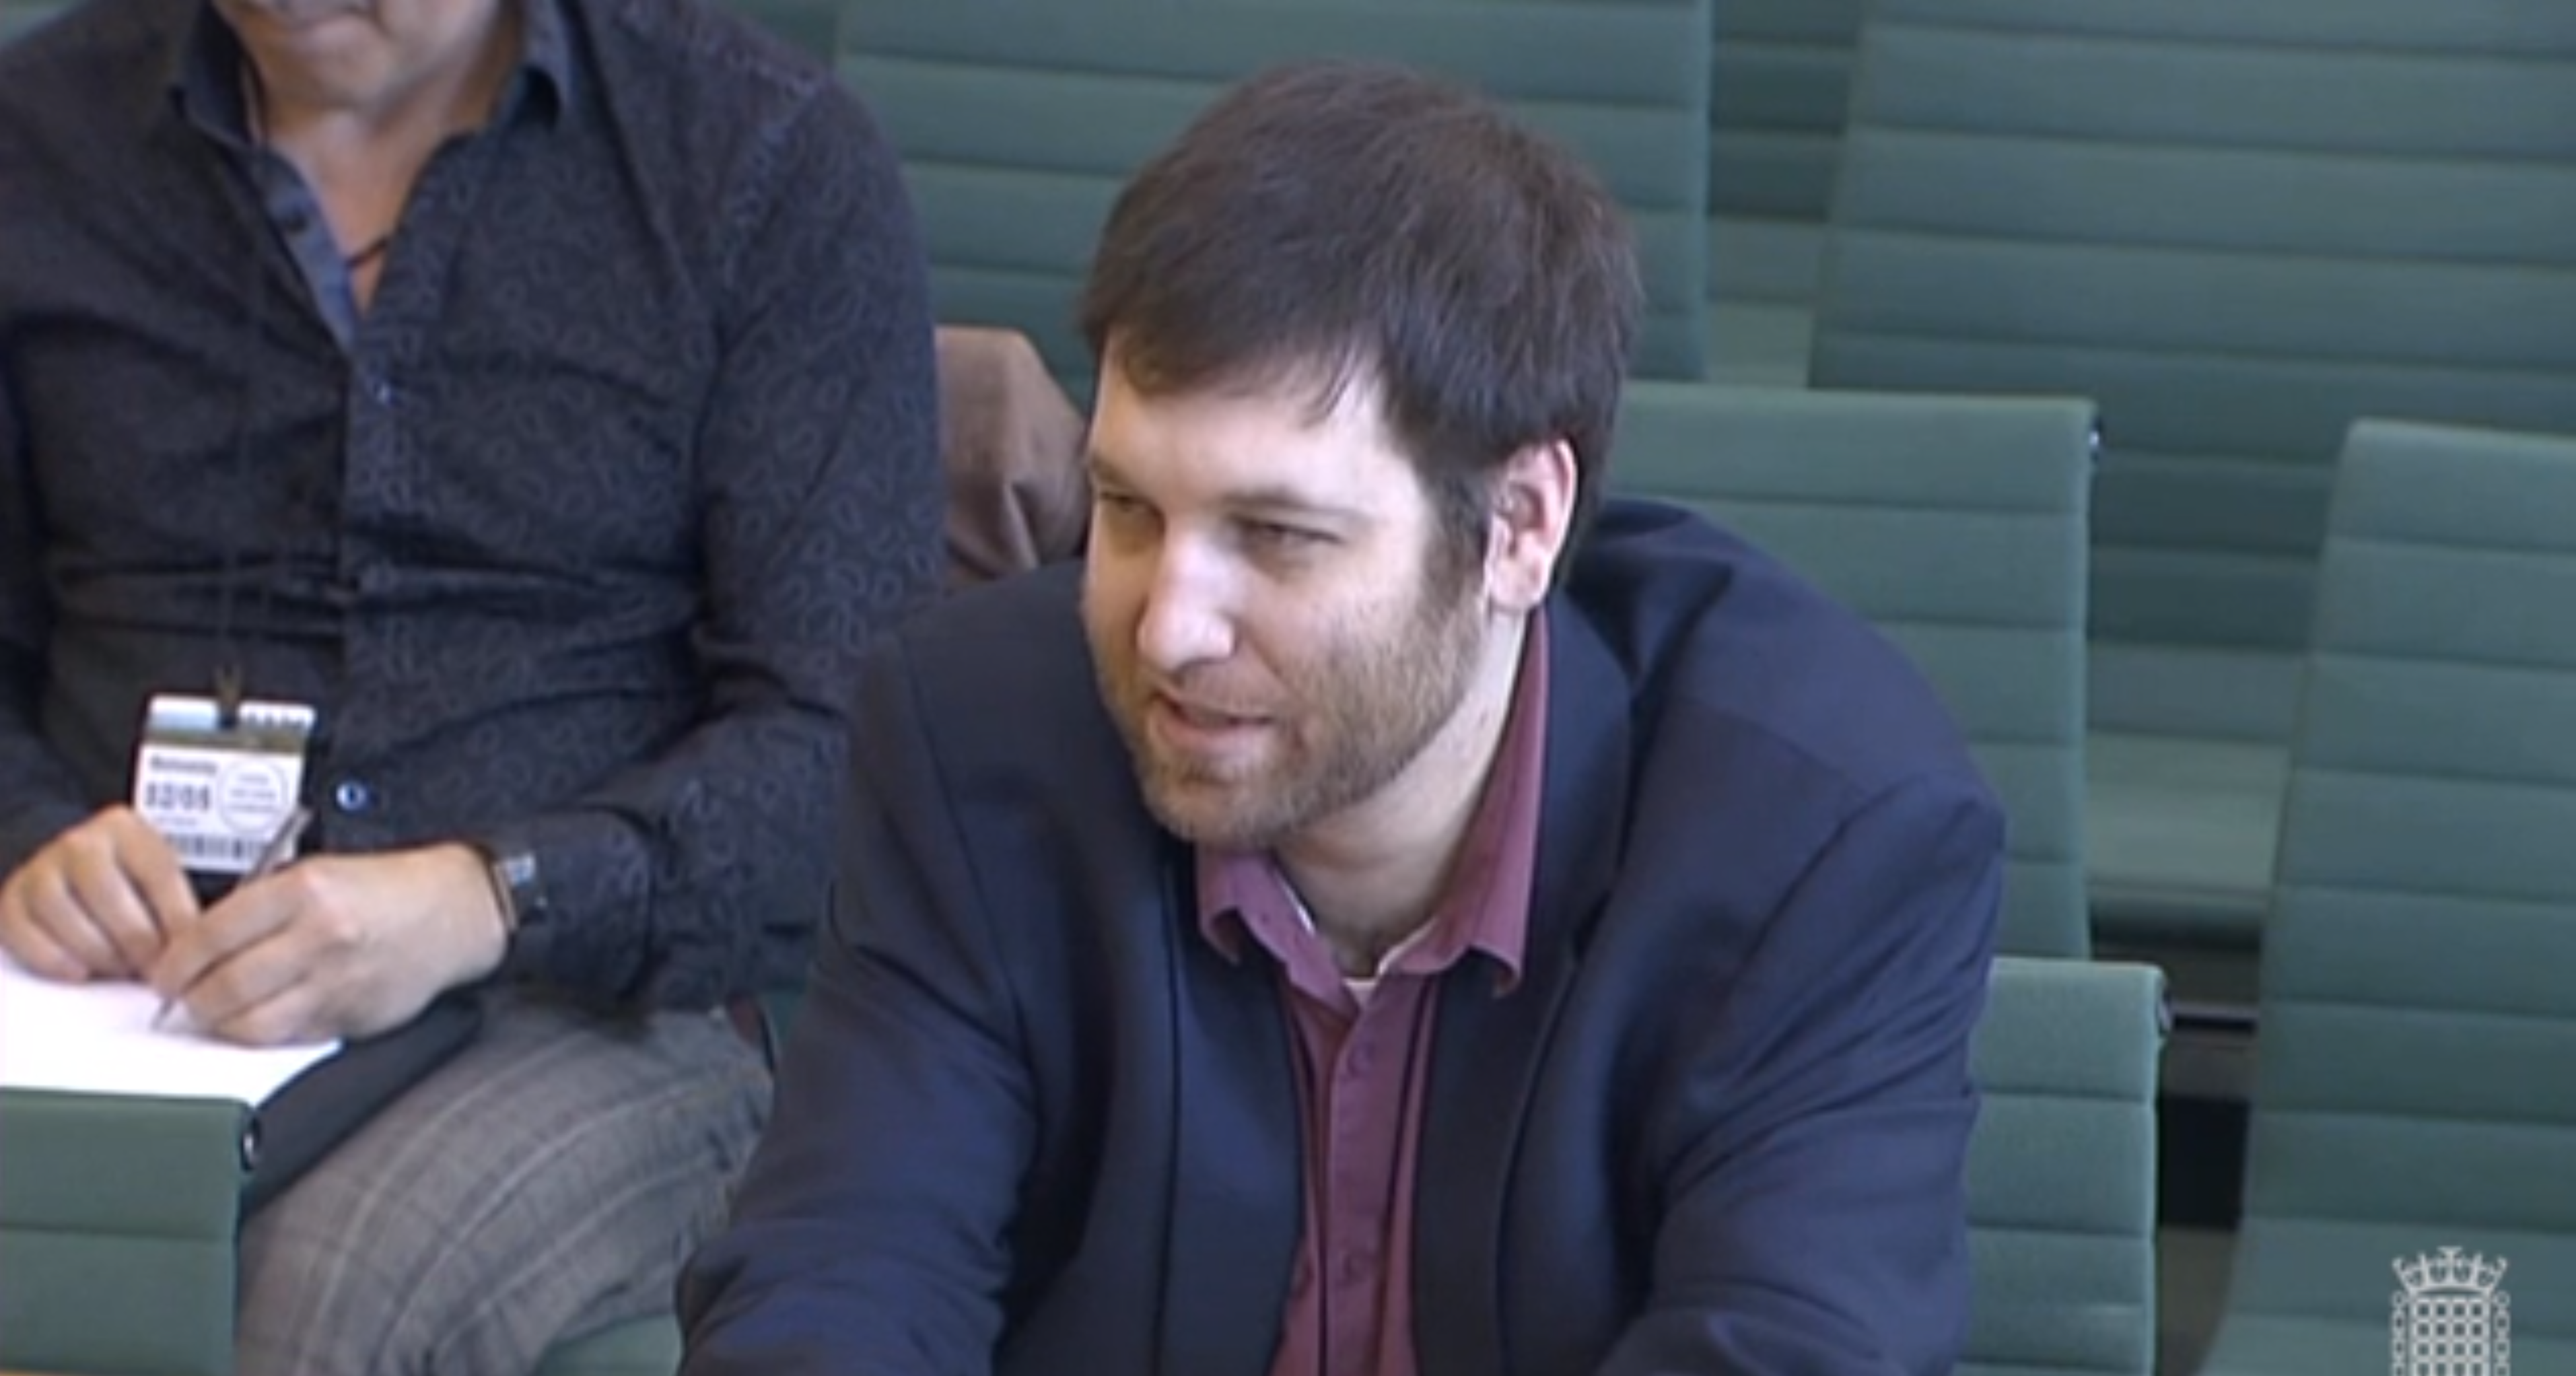 Chris Vickery gives evidence to the DCMs committee about Facebook,m Brexit, Aggregate IQ and Cambridge Analytica